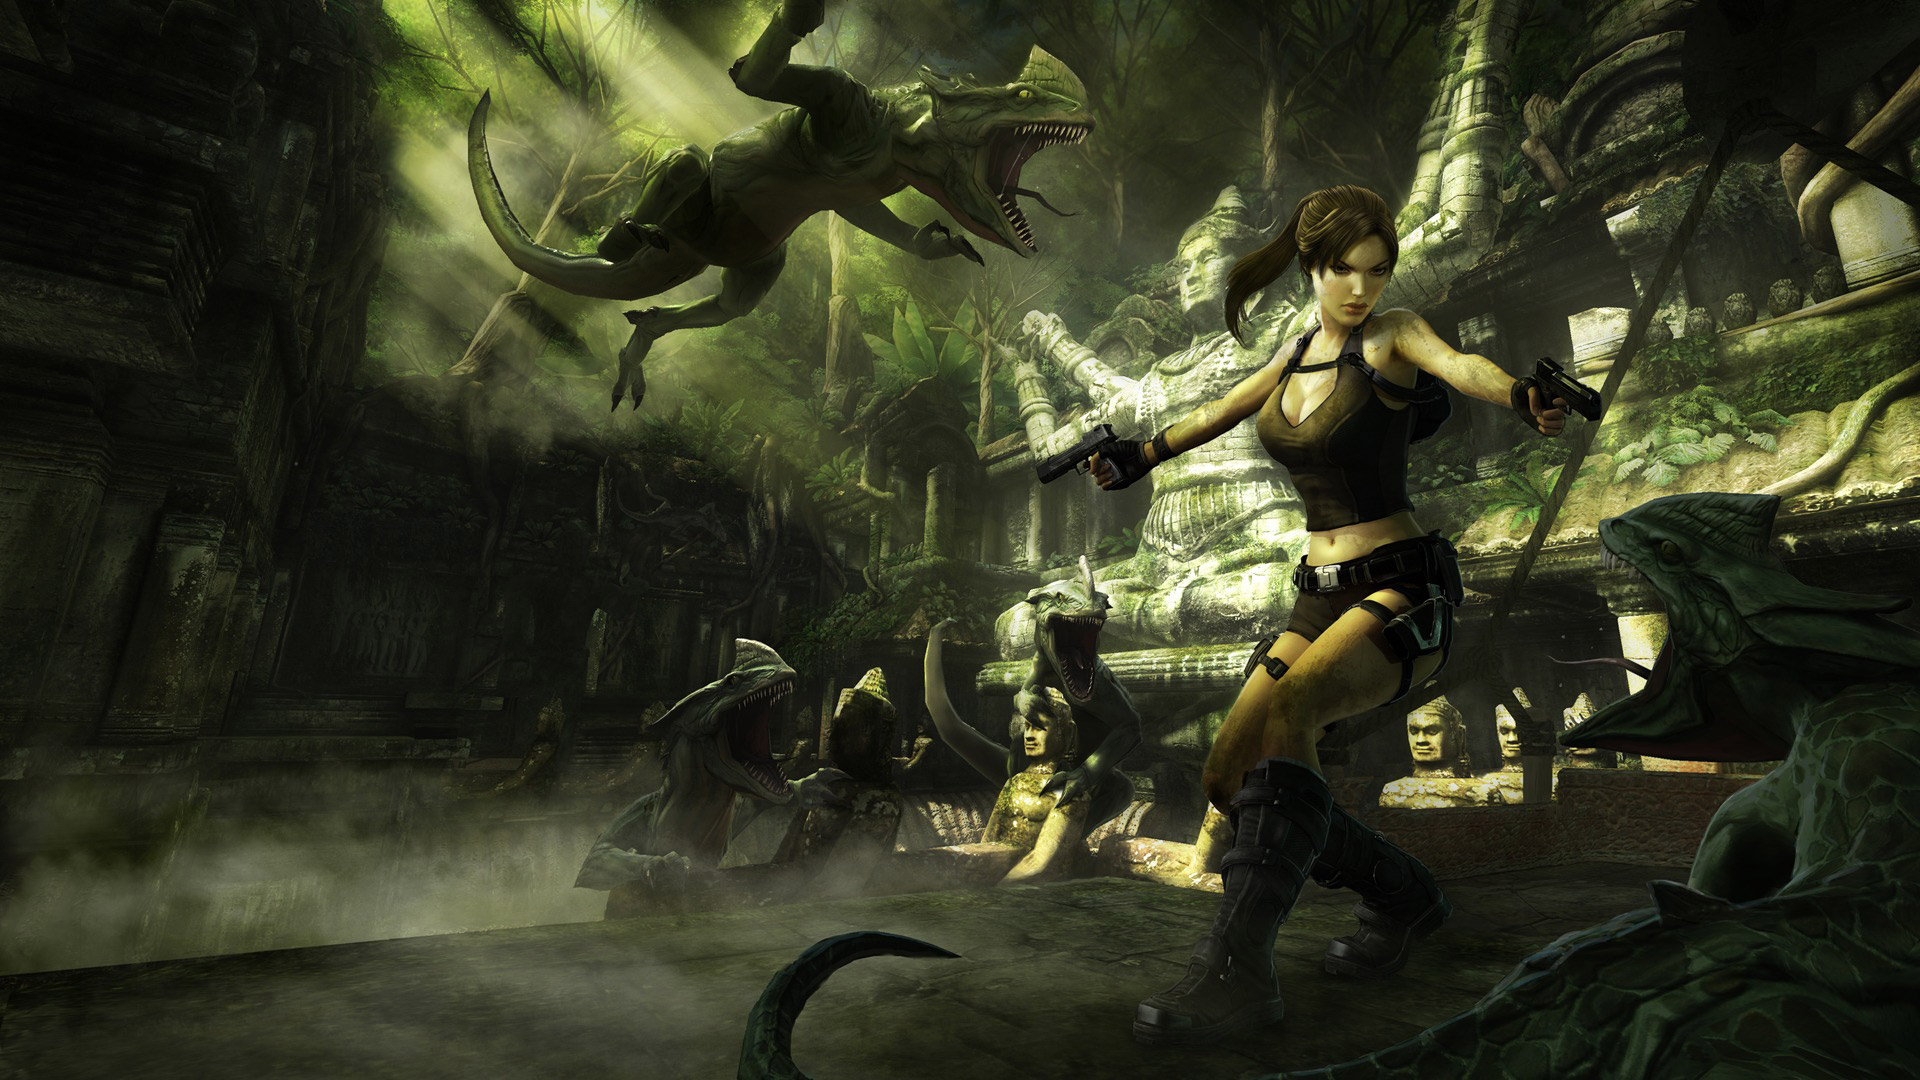 Free Tomb Raider: Anniversary Wallpaper in 1920x1080